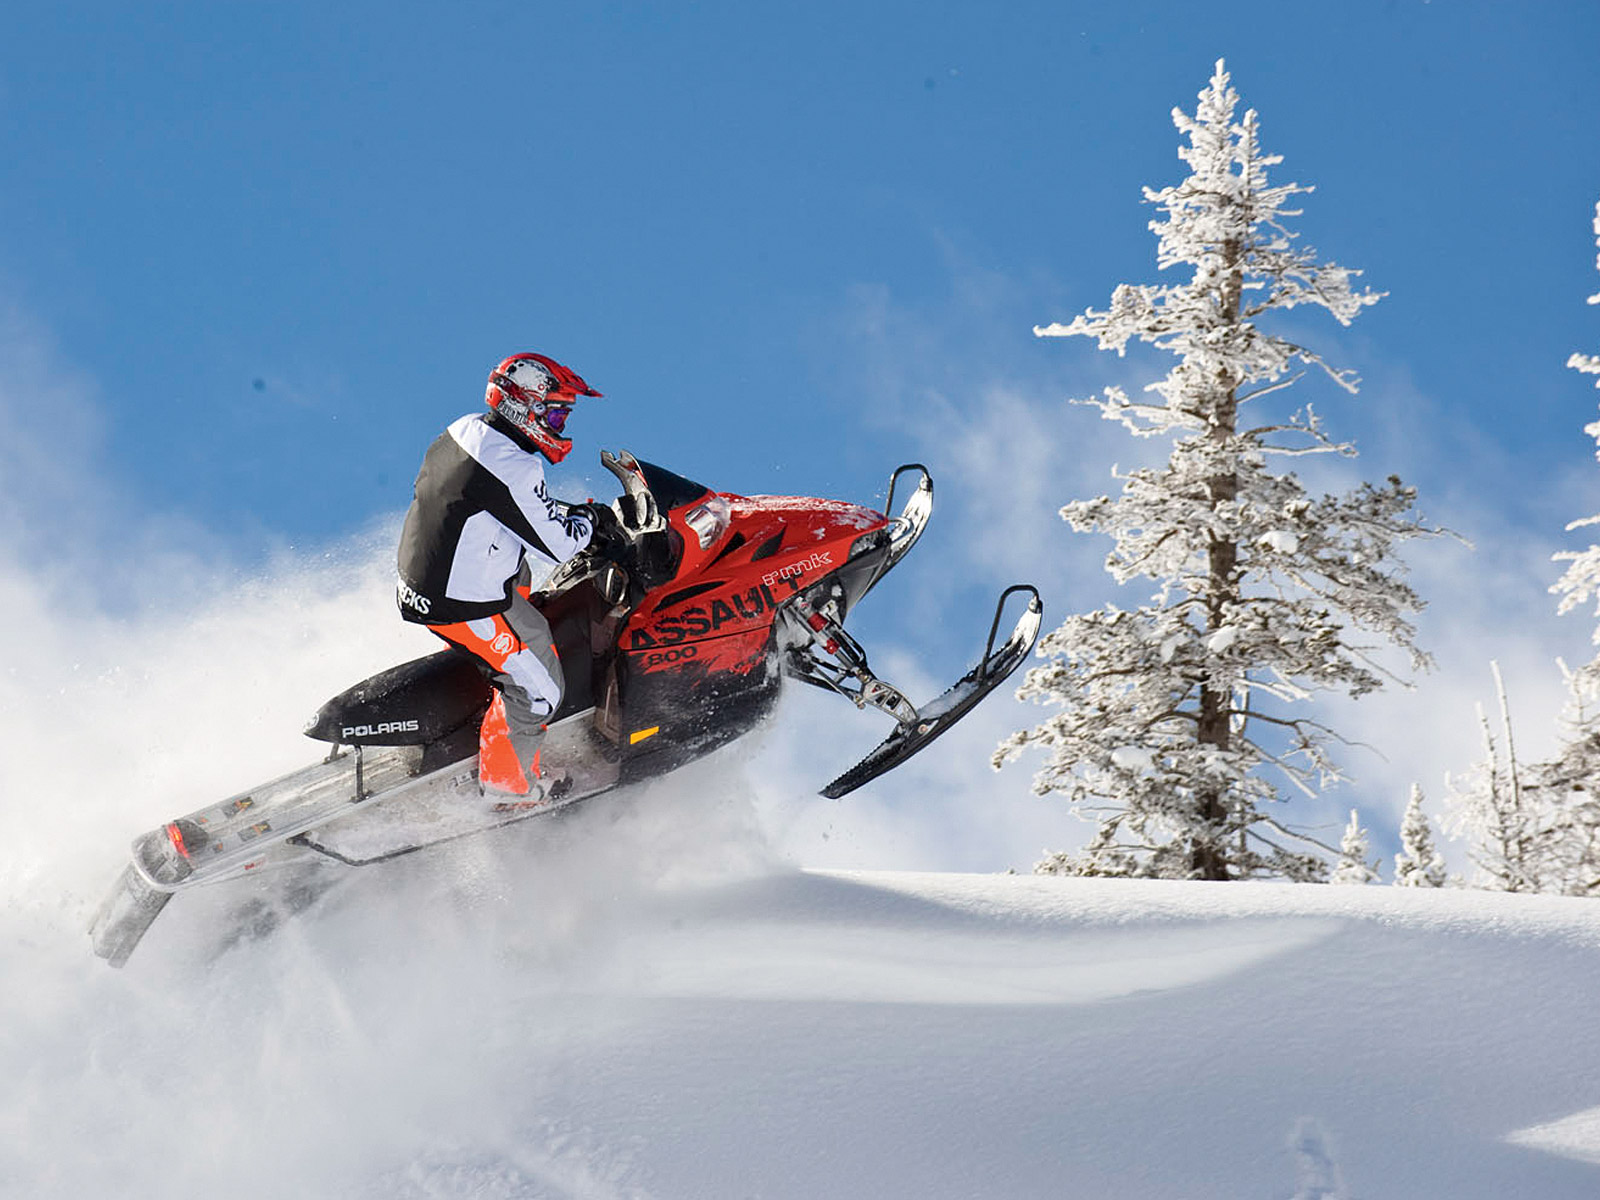 Snowmobile Wallpaper Backgrounds   Posted by djuqy rose   Snowmobiling 556